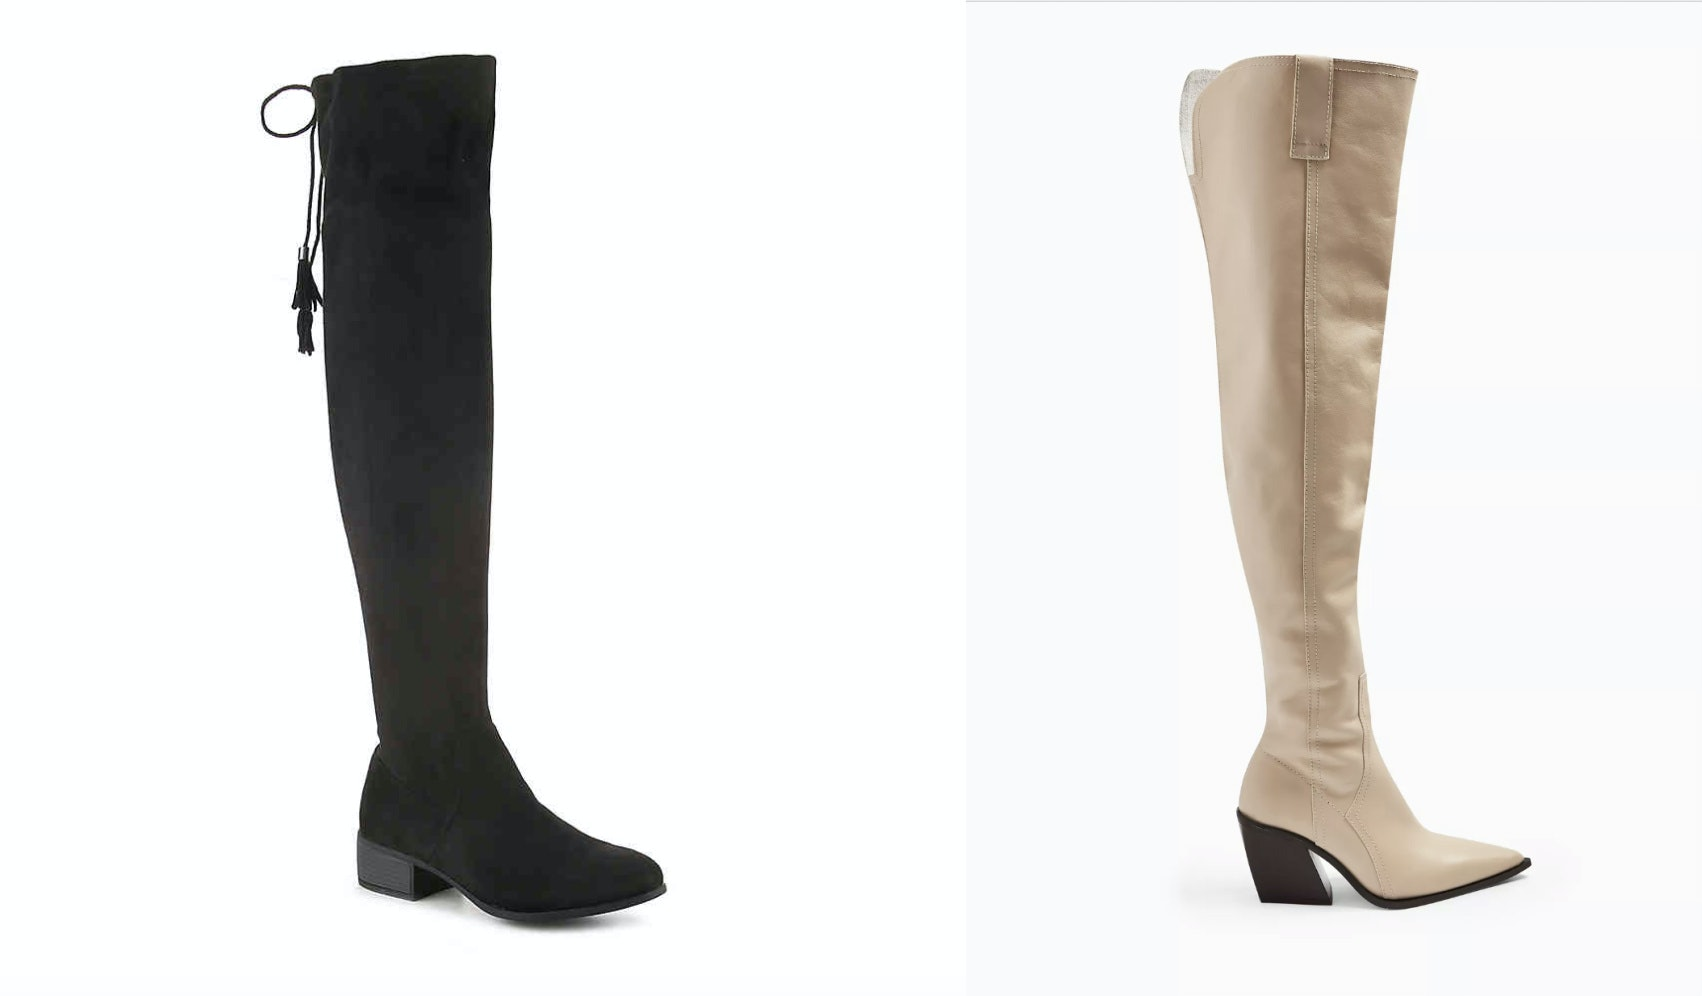 20 Thigh-High Boots For Fall 2019 That